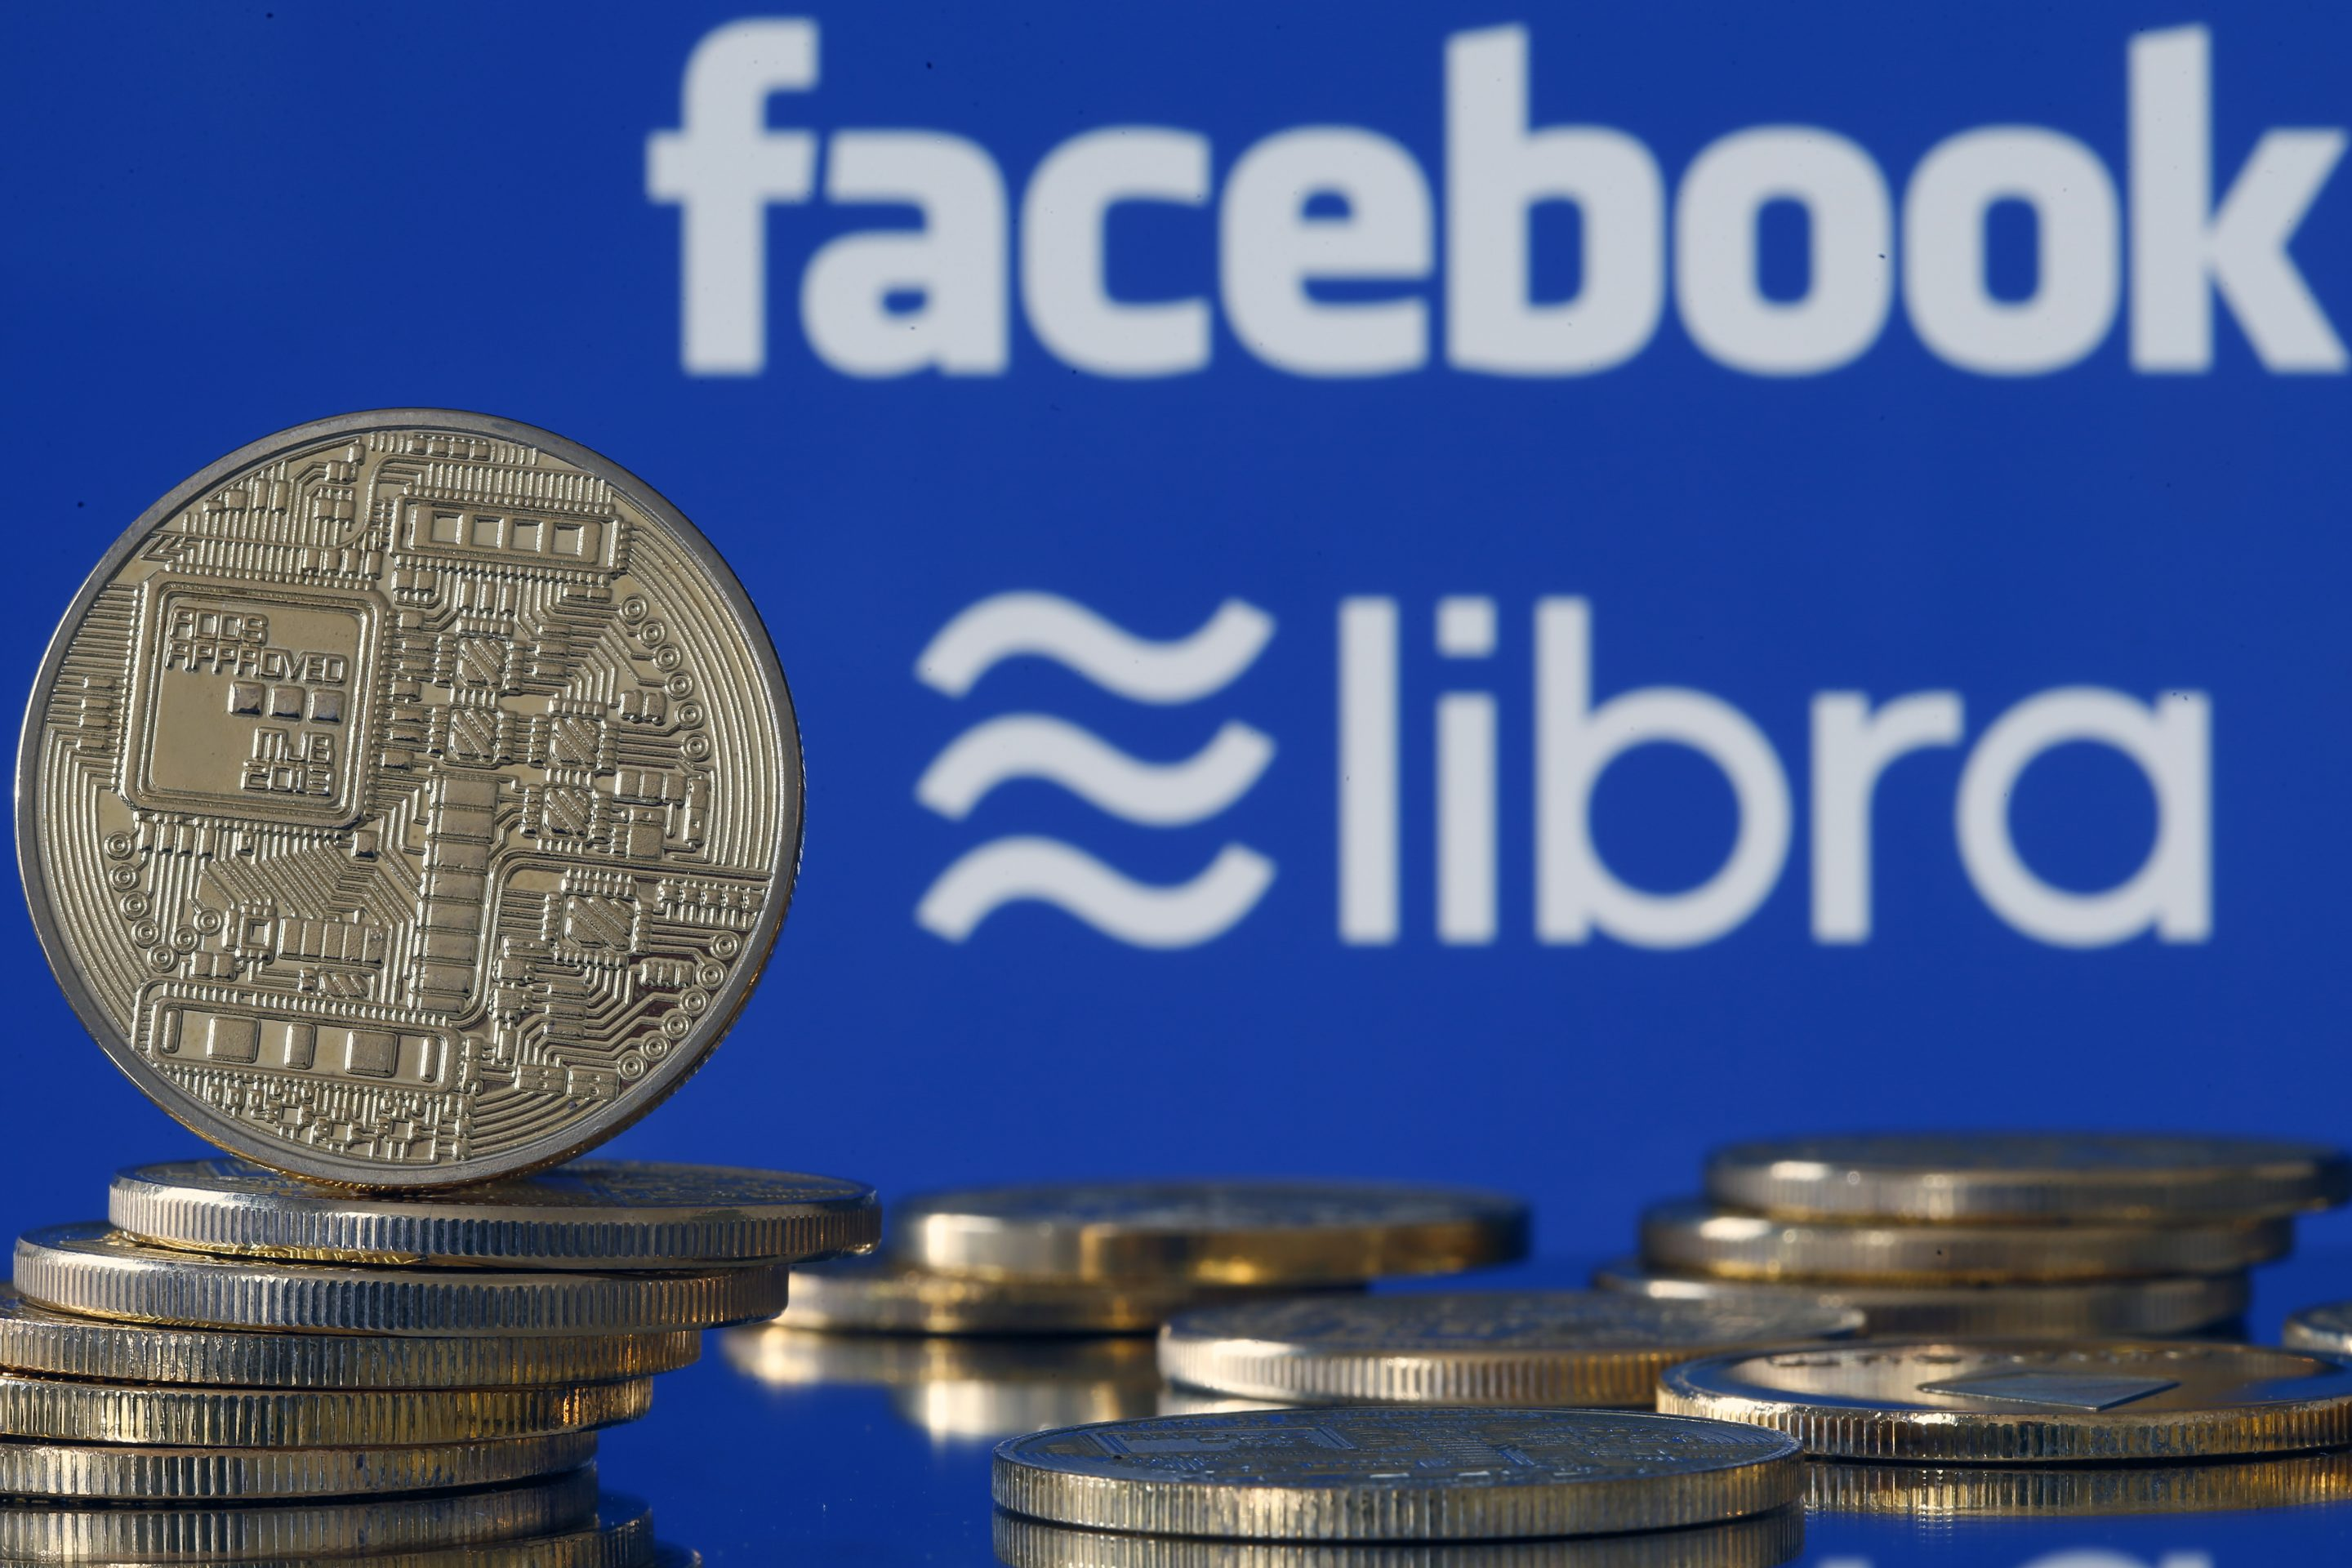 Facebook Libra Virtual Currency